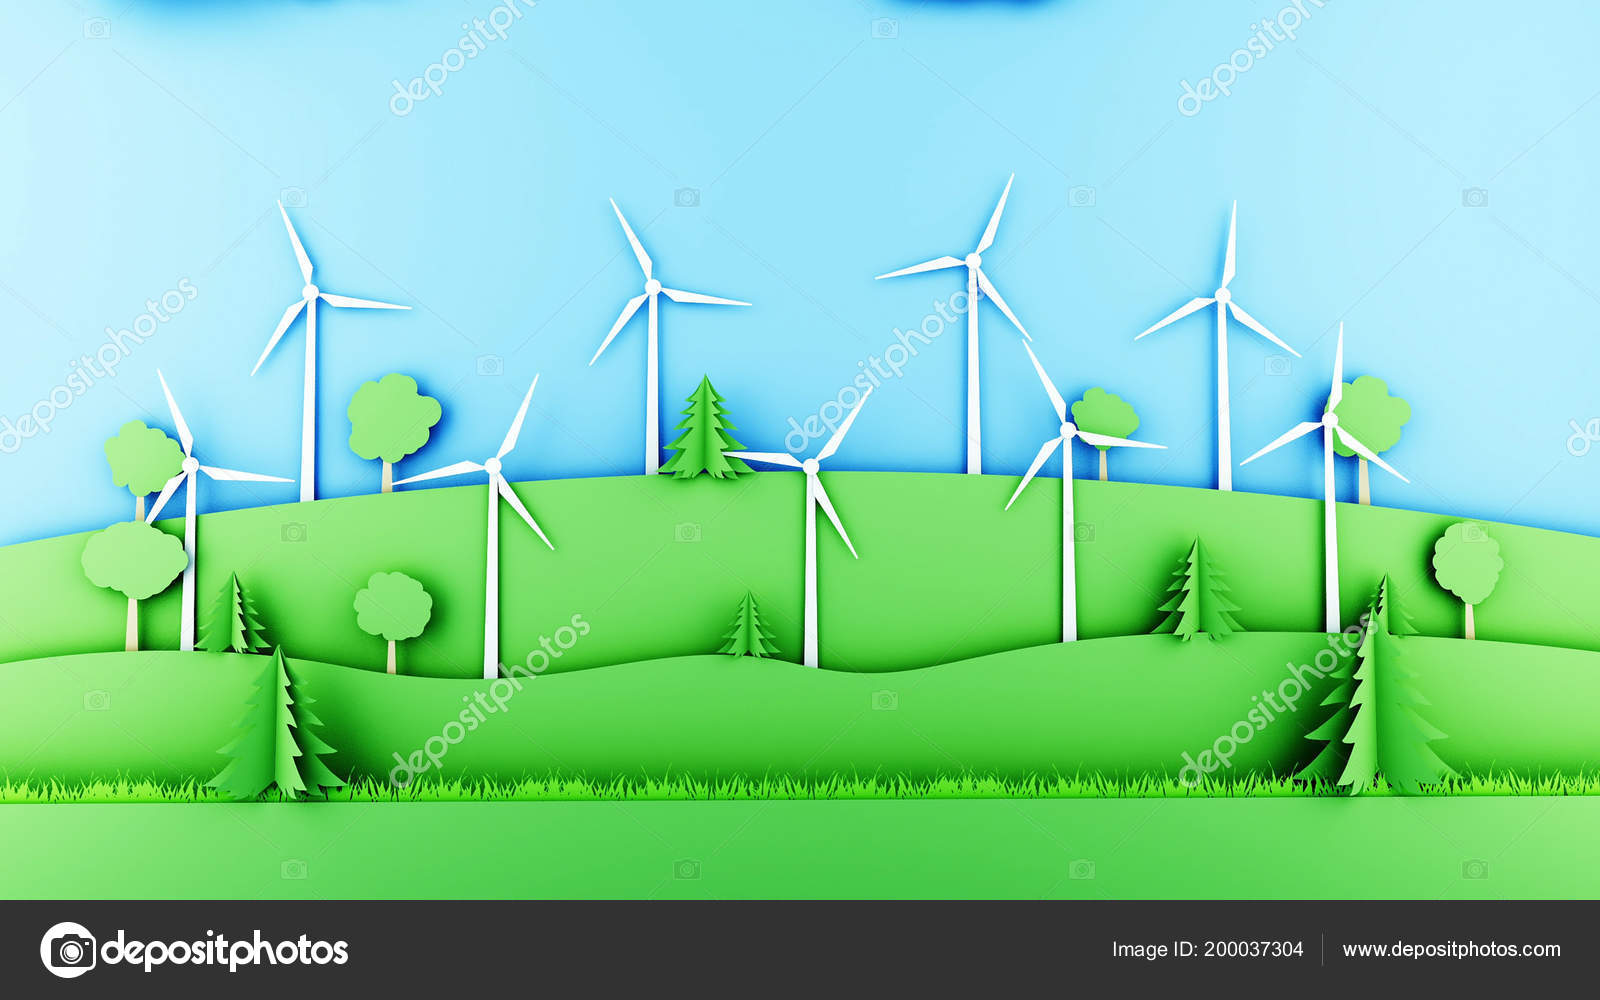 Paper Cartoon Landscape With Wind Power Turbines Ecological Concept Turbine Diagram 3d Rendering Stock